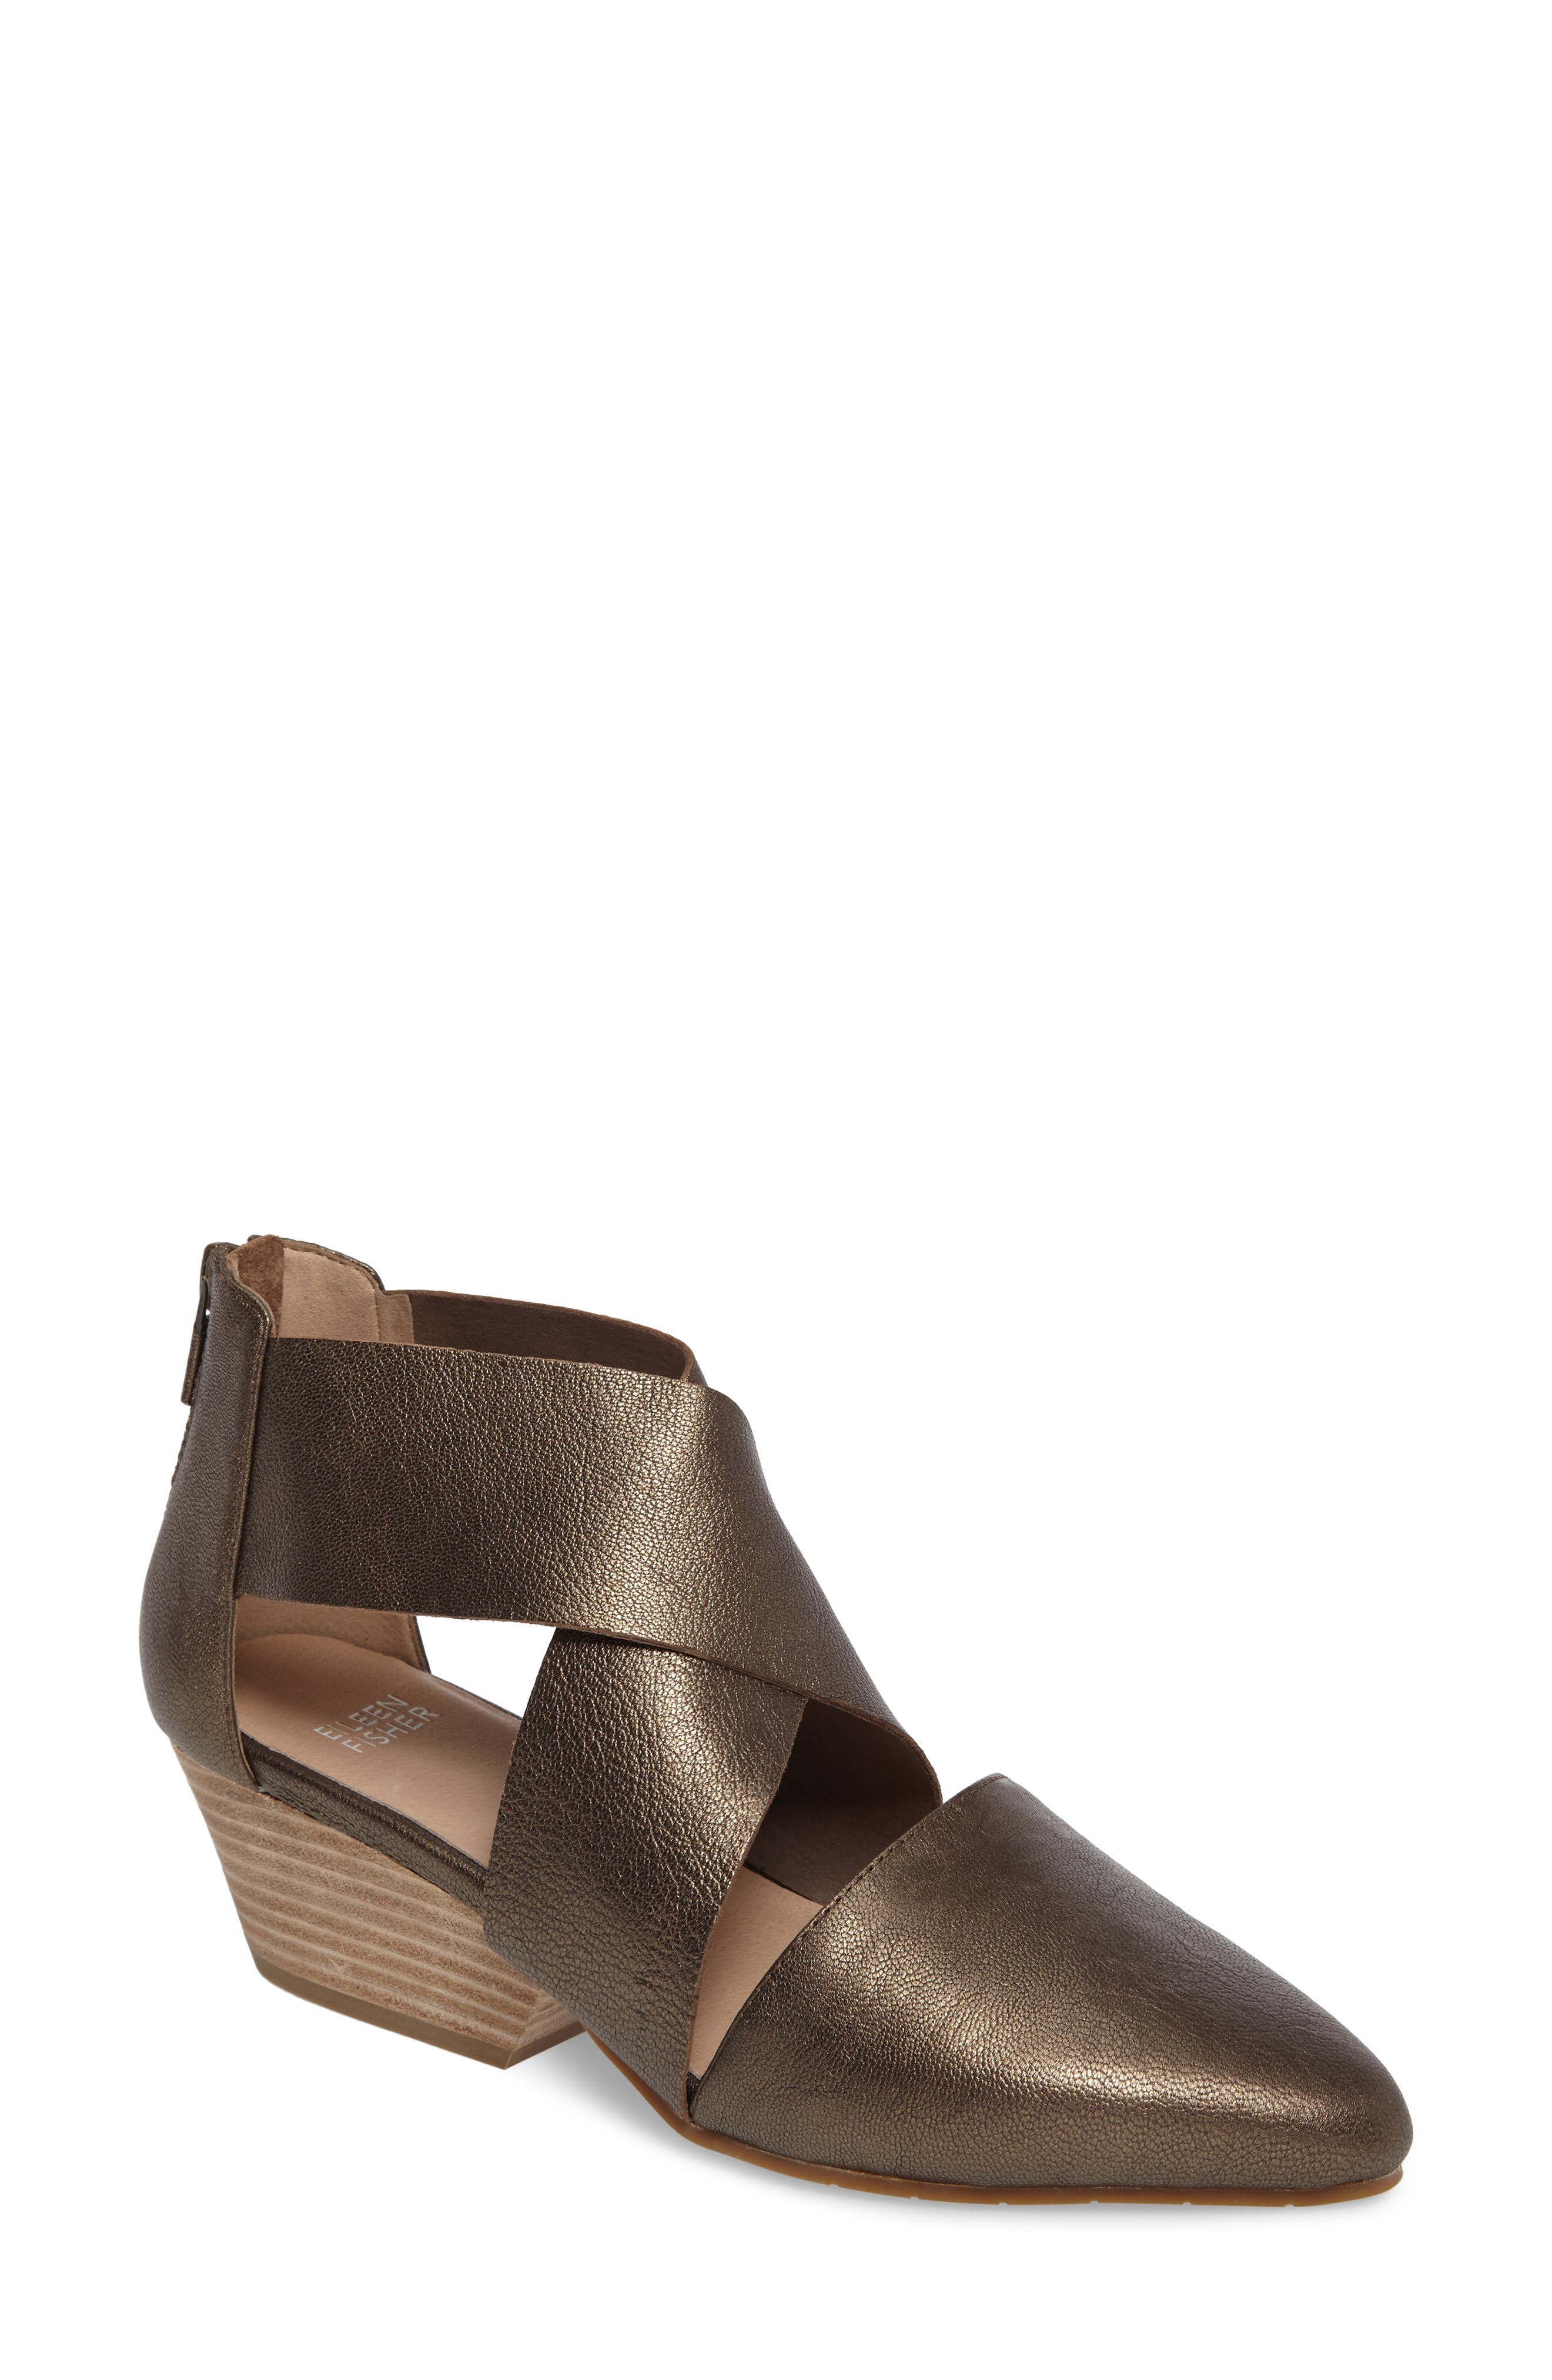 Alternate Image 1 Selected - Eileen Fisher Vera Strappy Pump (Women)